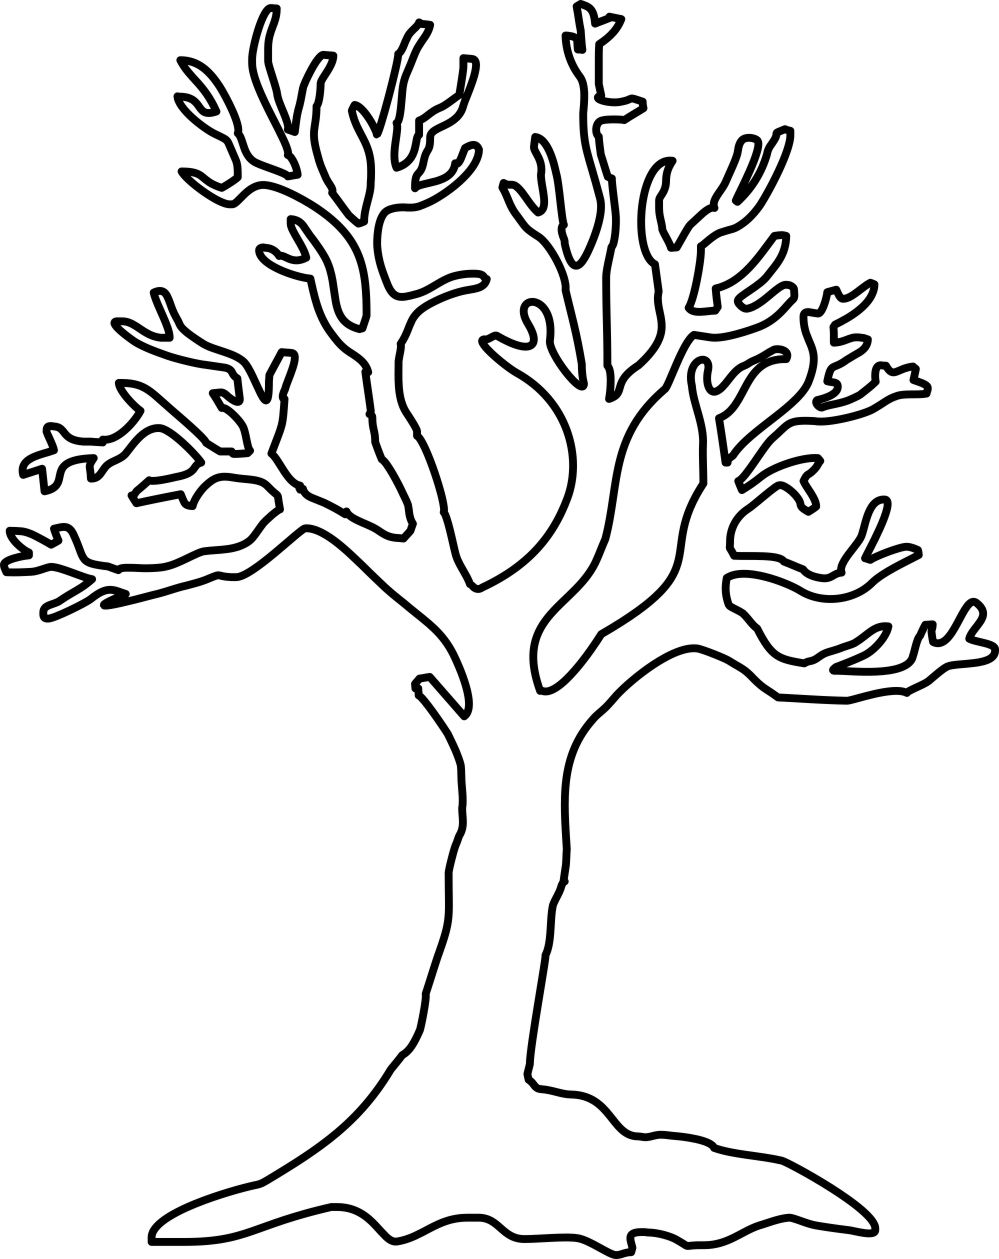 Trees Of Life Drawing Google Search Tree Coloring Page Tree Stencil Family Tree Artwork